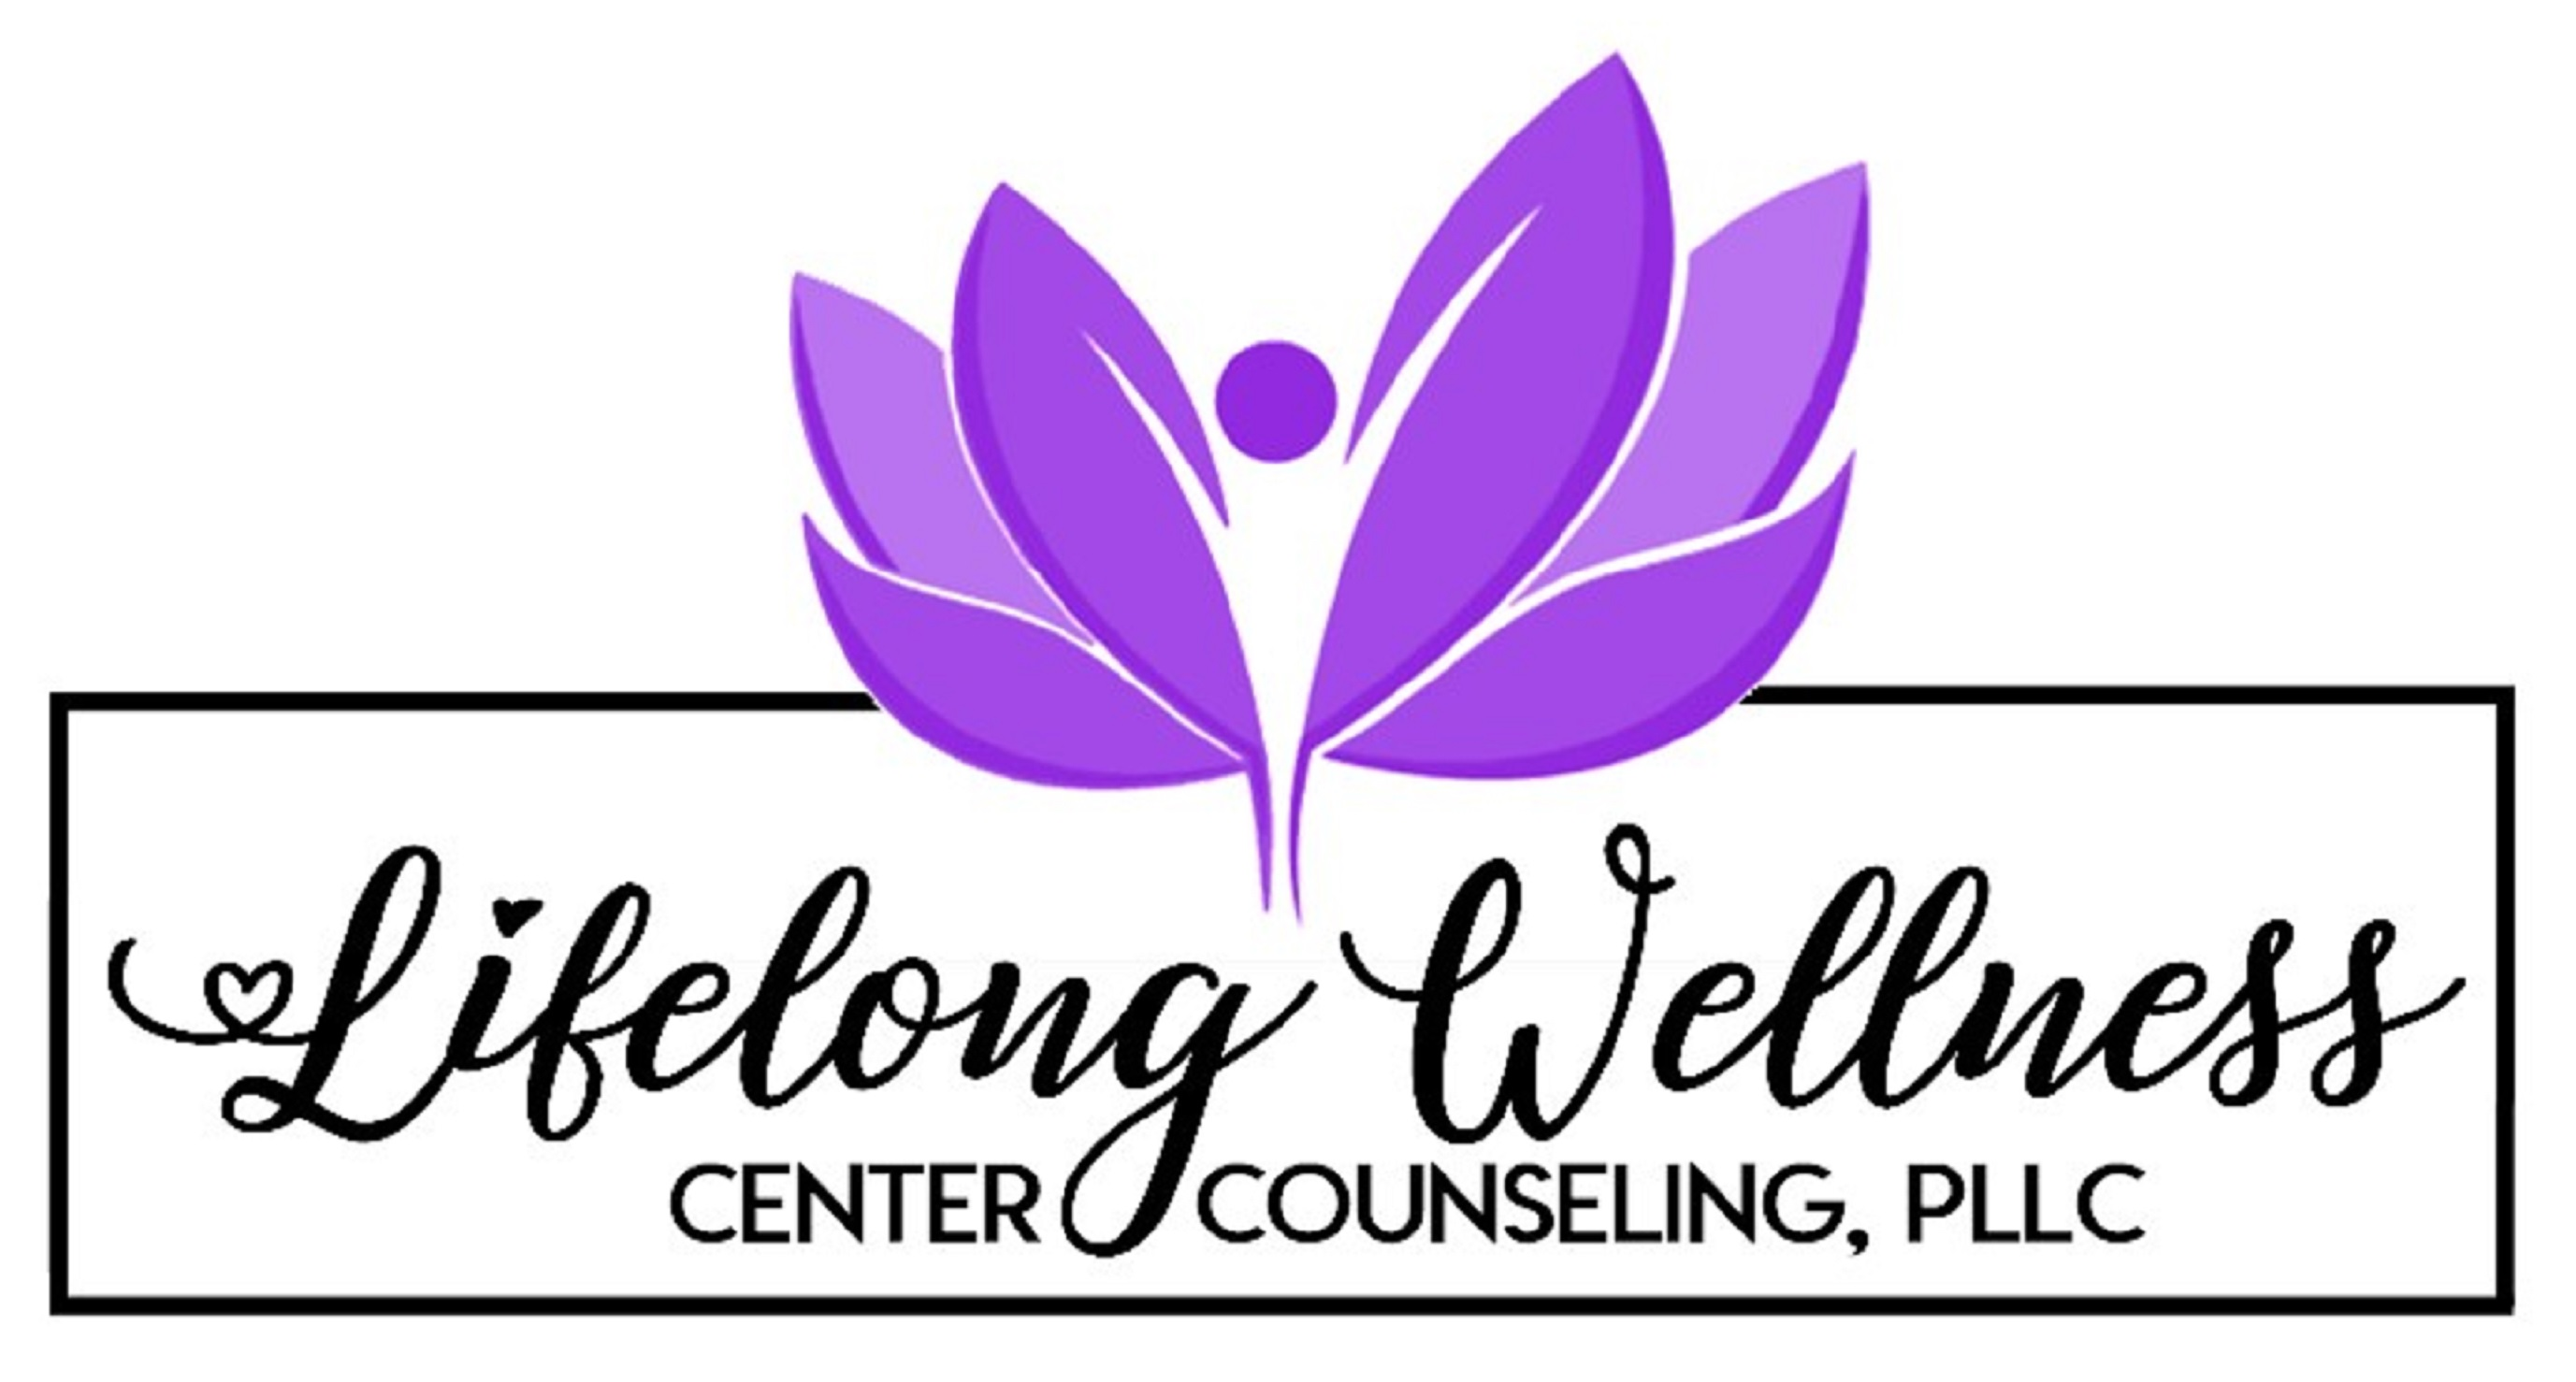 Lifelong Wellness Center Counseling, PLLC